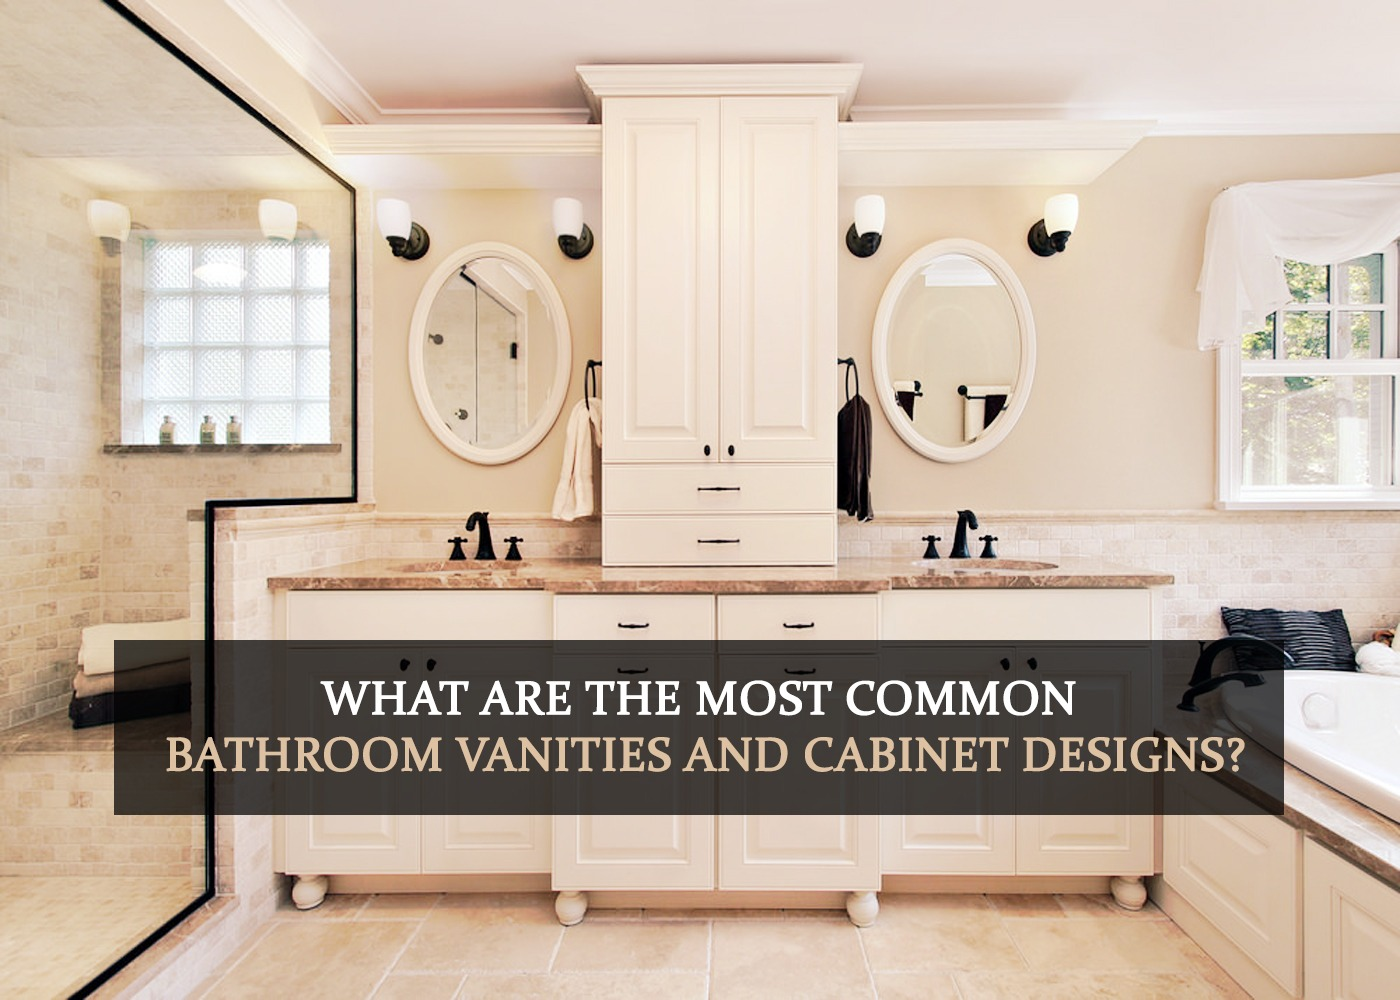 What are the most common bathroom vanities and cabinet designs?